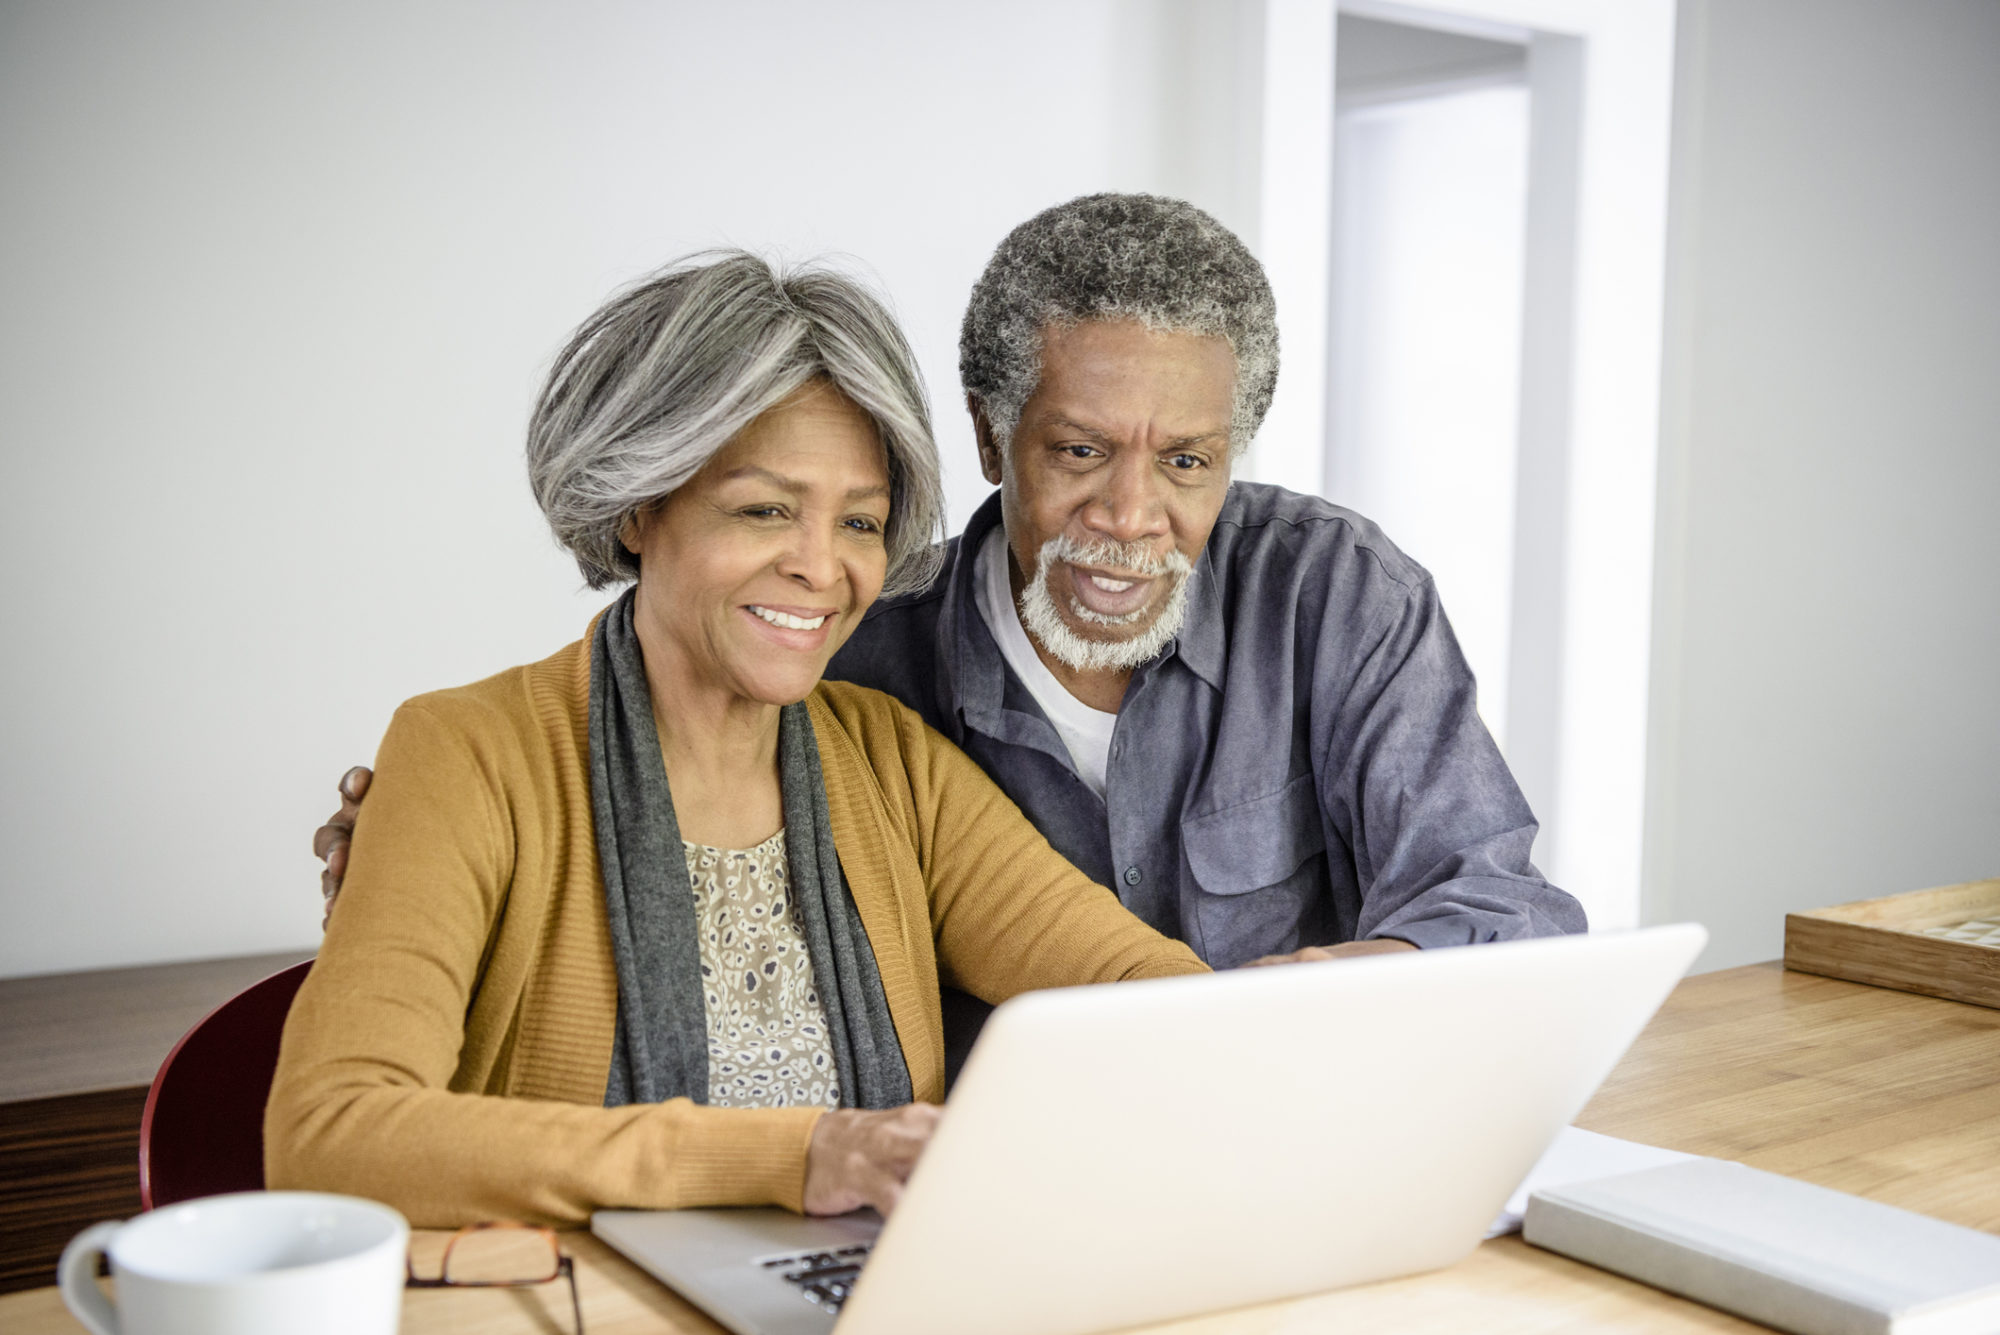 Senior African American couple using laptop together at home. The woman is typing and the man is watching her with his arm around her